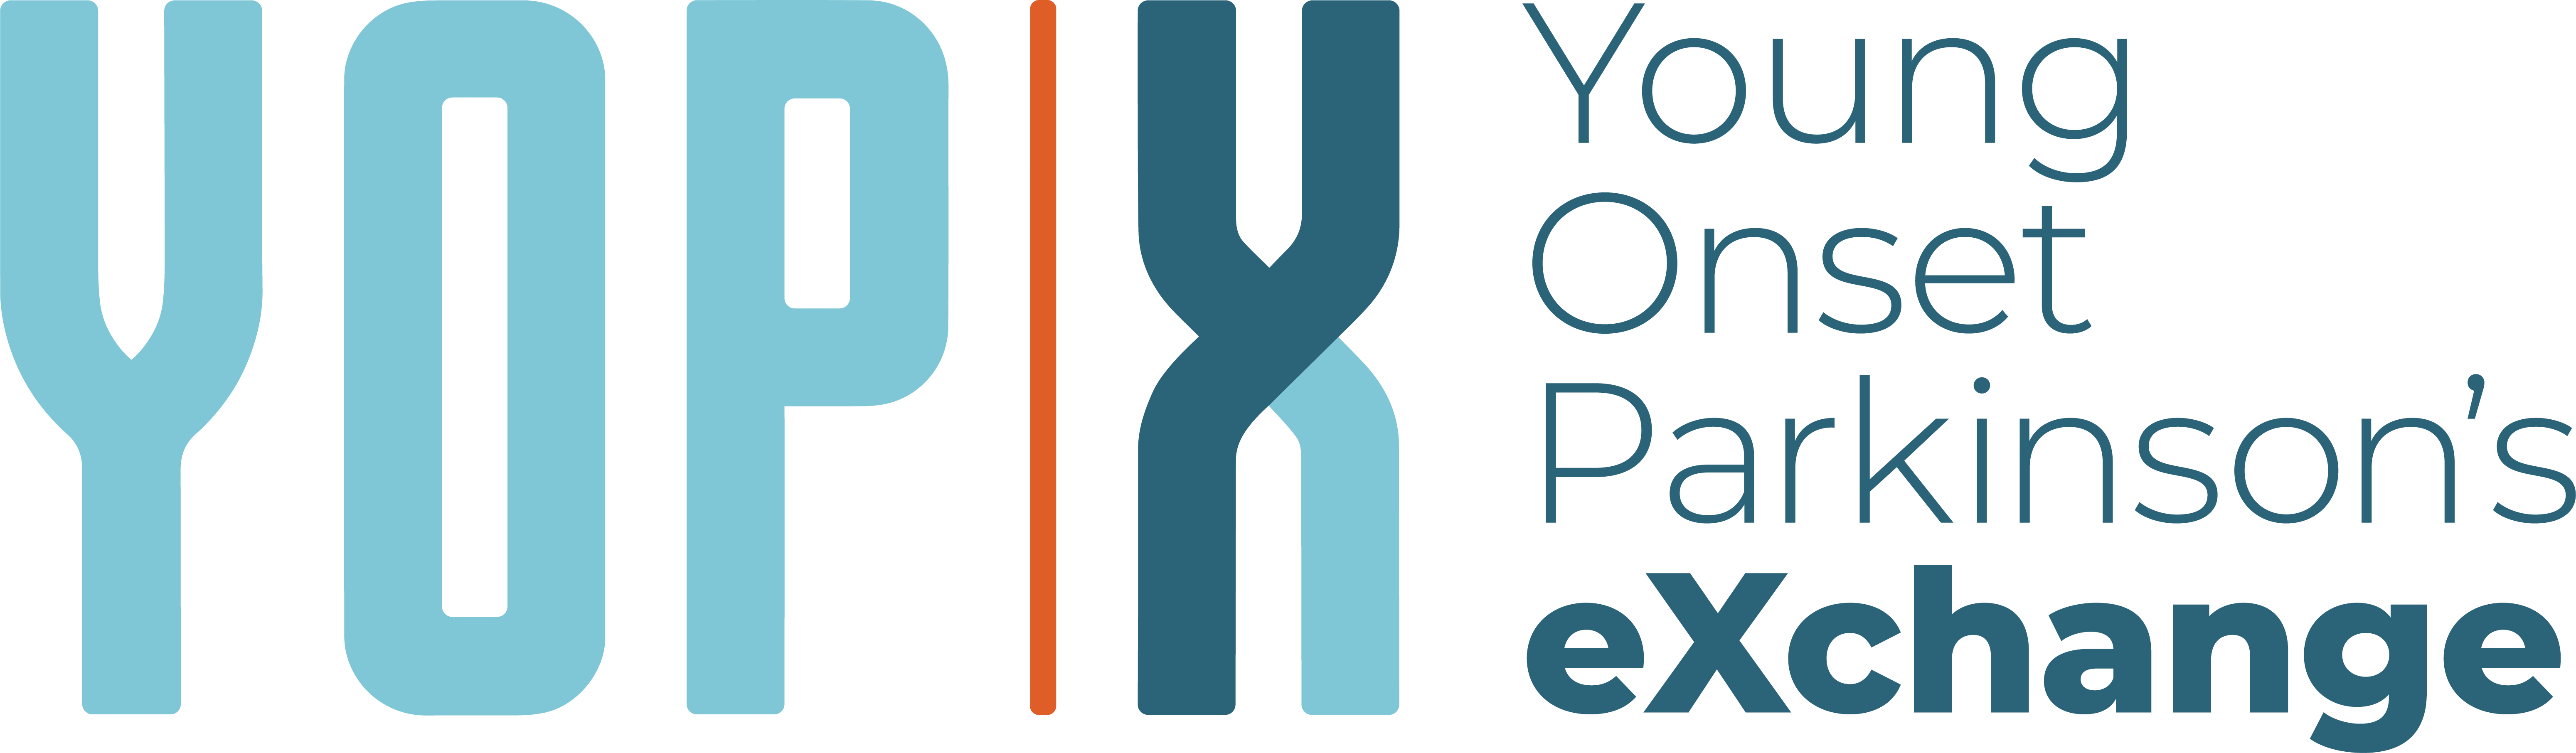 Young Onset Parkinson's Exchange Forum